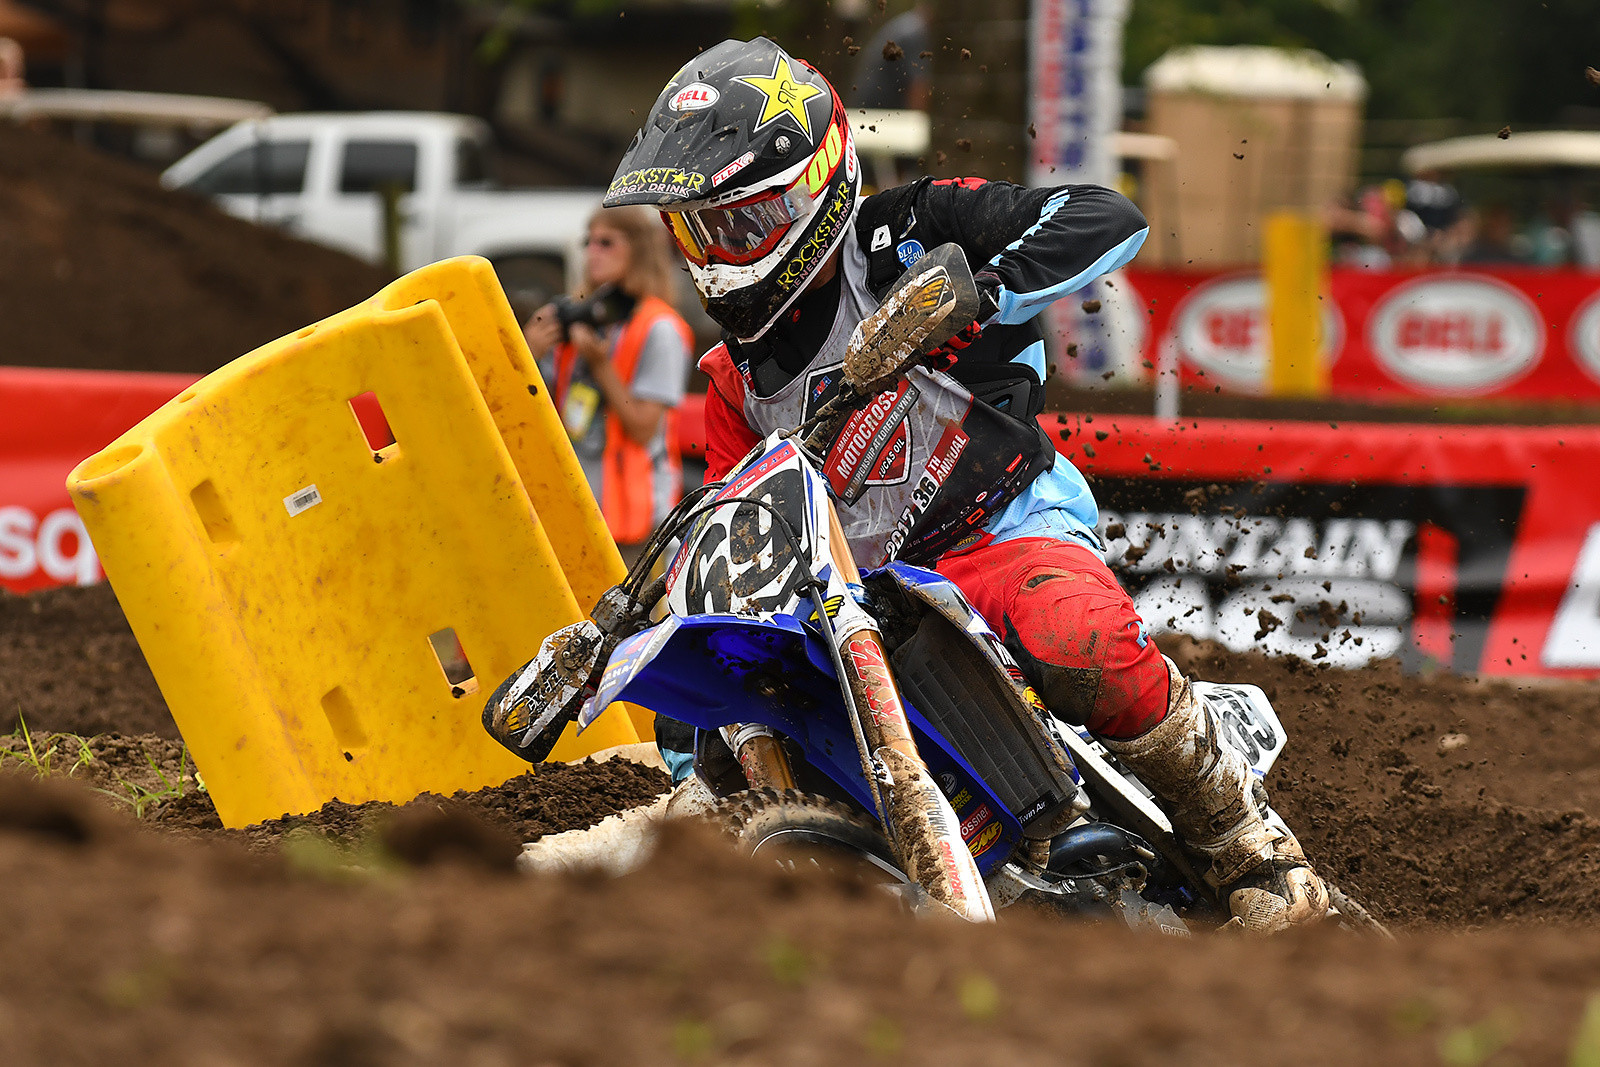 After finishing eleventh in his first Moto, Challen Tennant came on strong in his second A class Moto of the day.